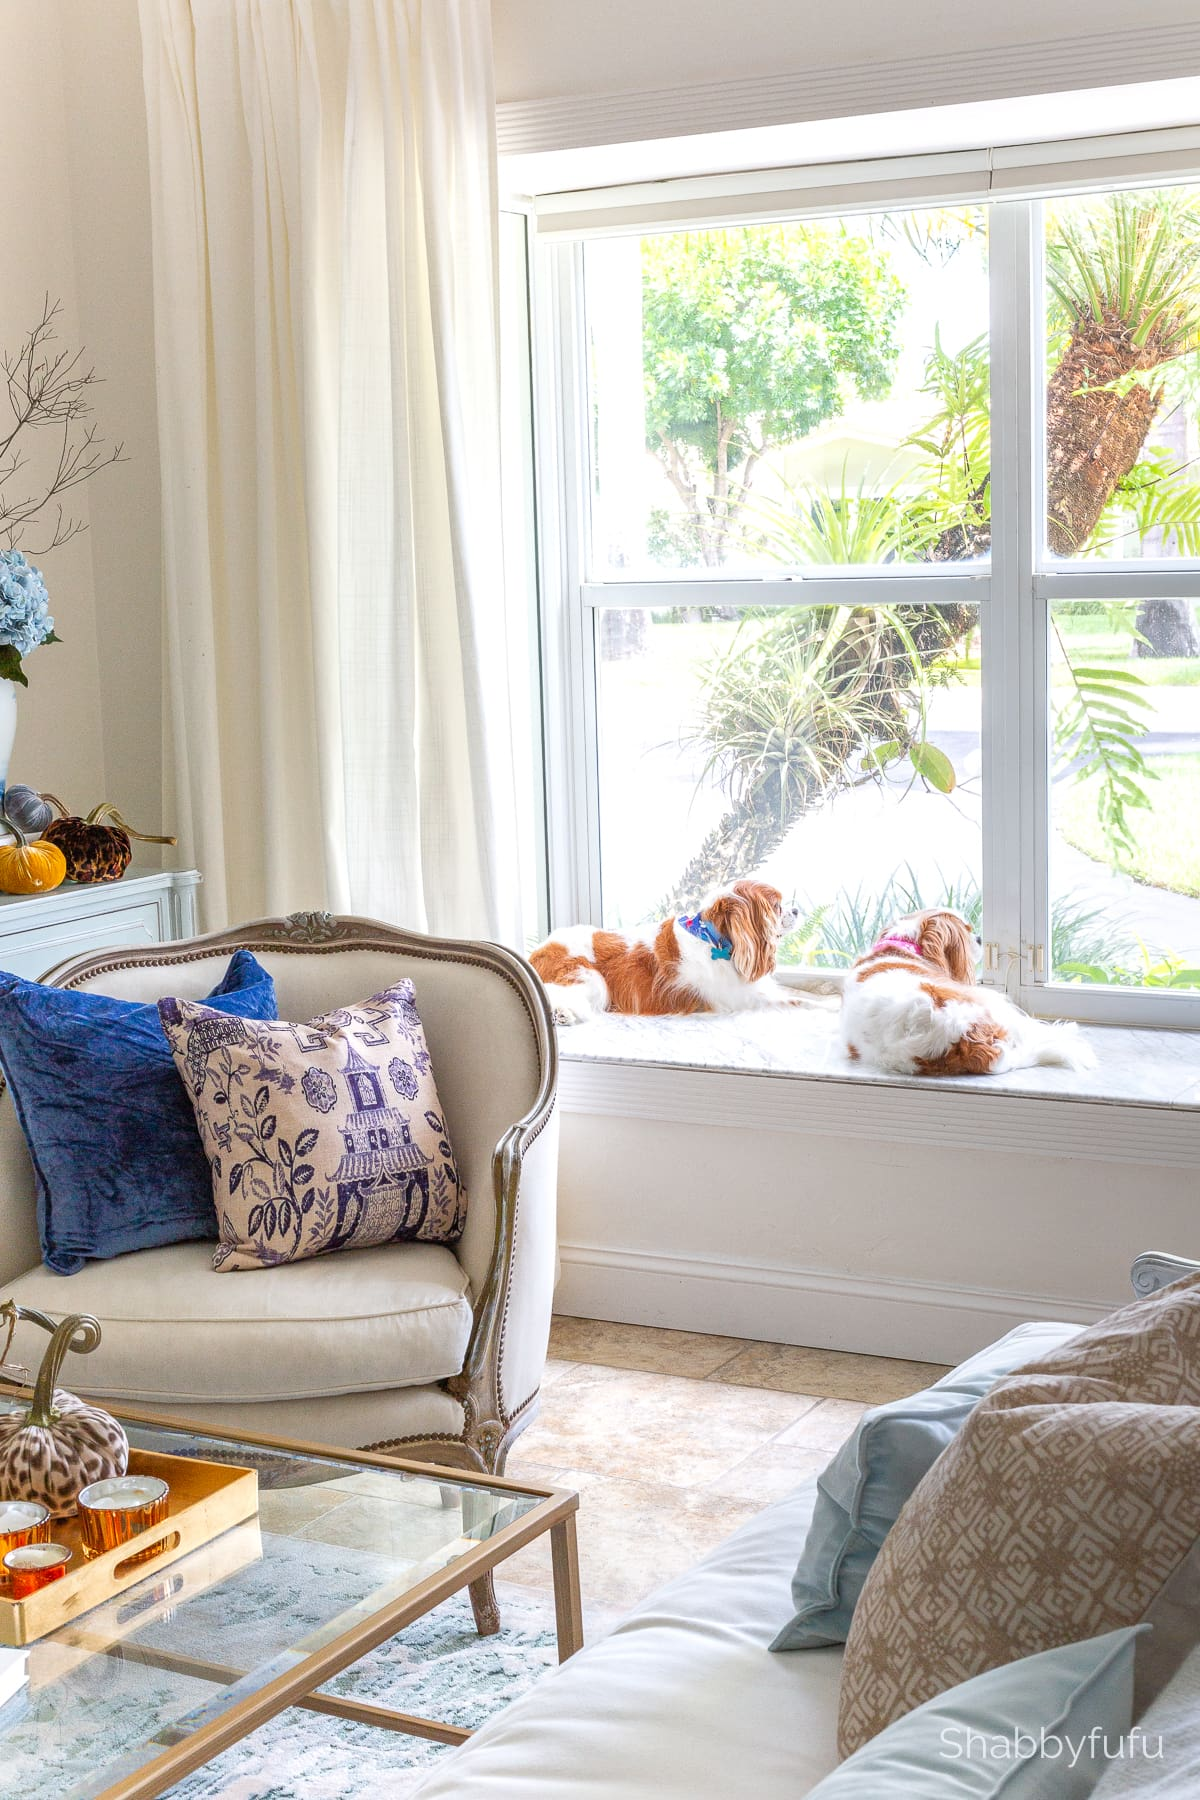 luxe fall decorating with velvet with cavalier spaniels